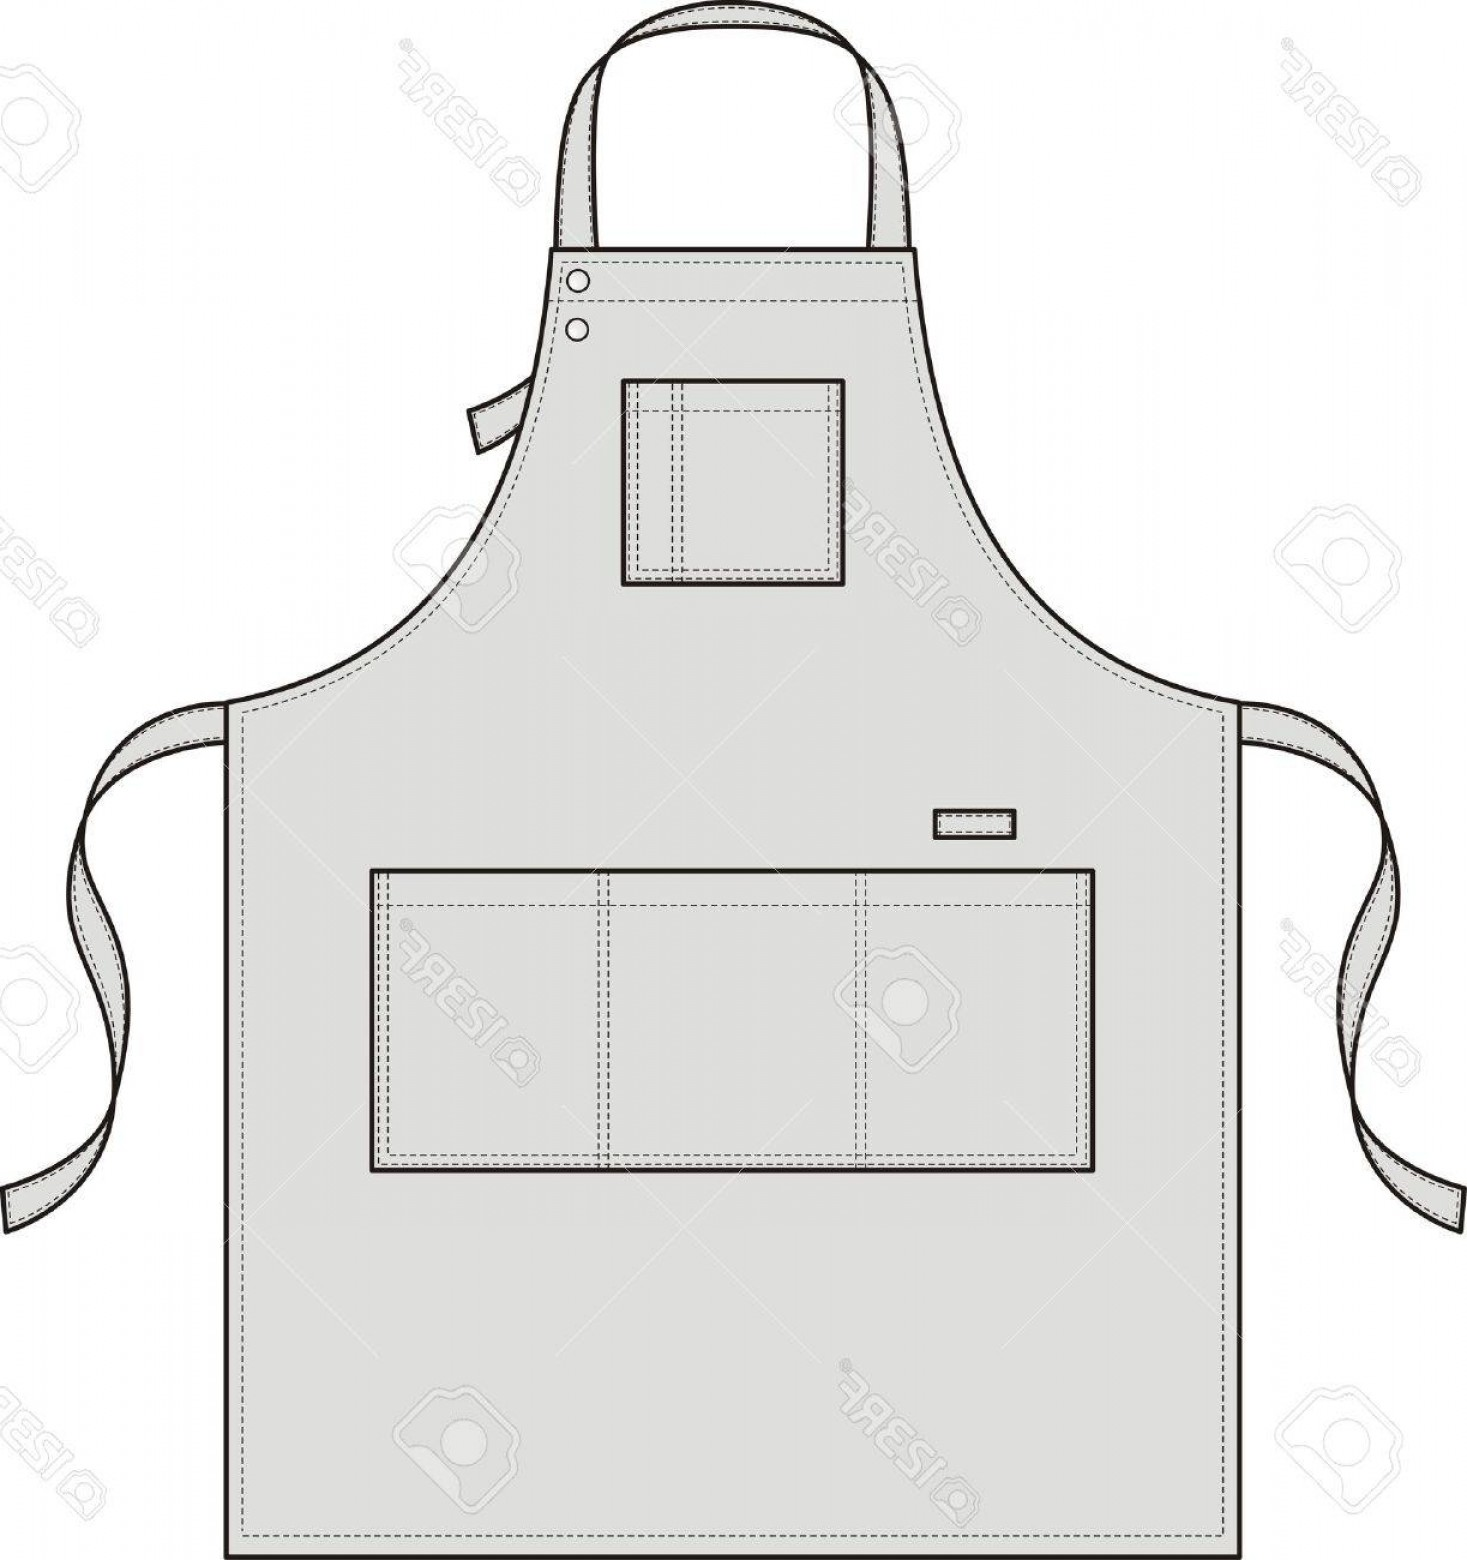 Apron Vector: Photoapron With Pockets A Shoulder Strap And A Belt